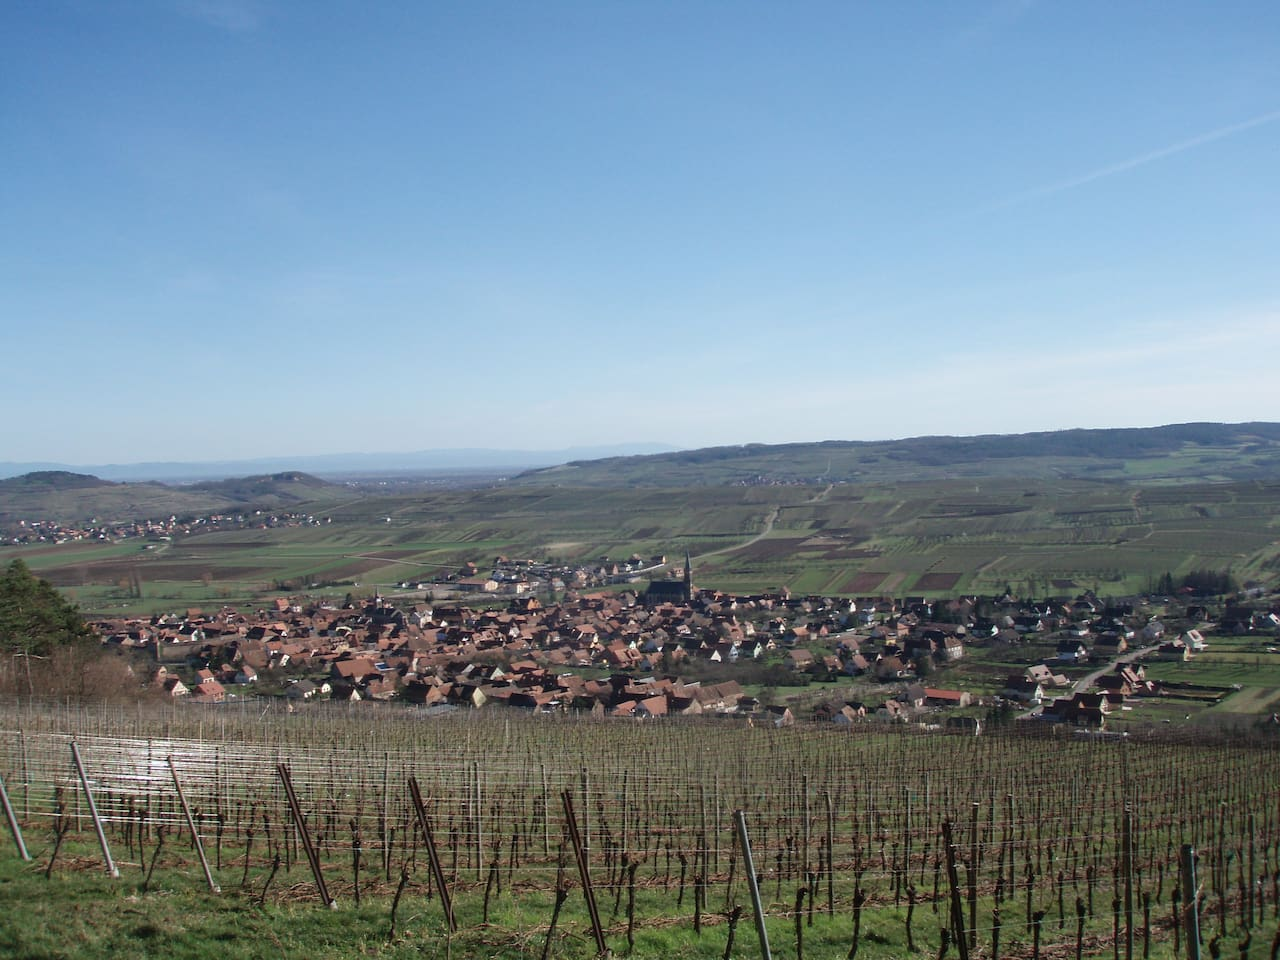 The village is surrounded by vineyards